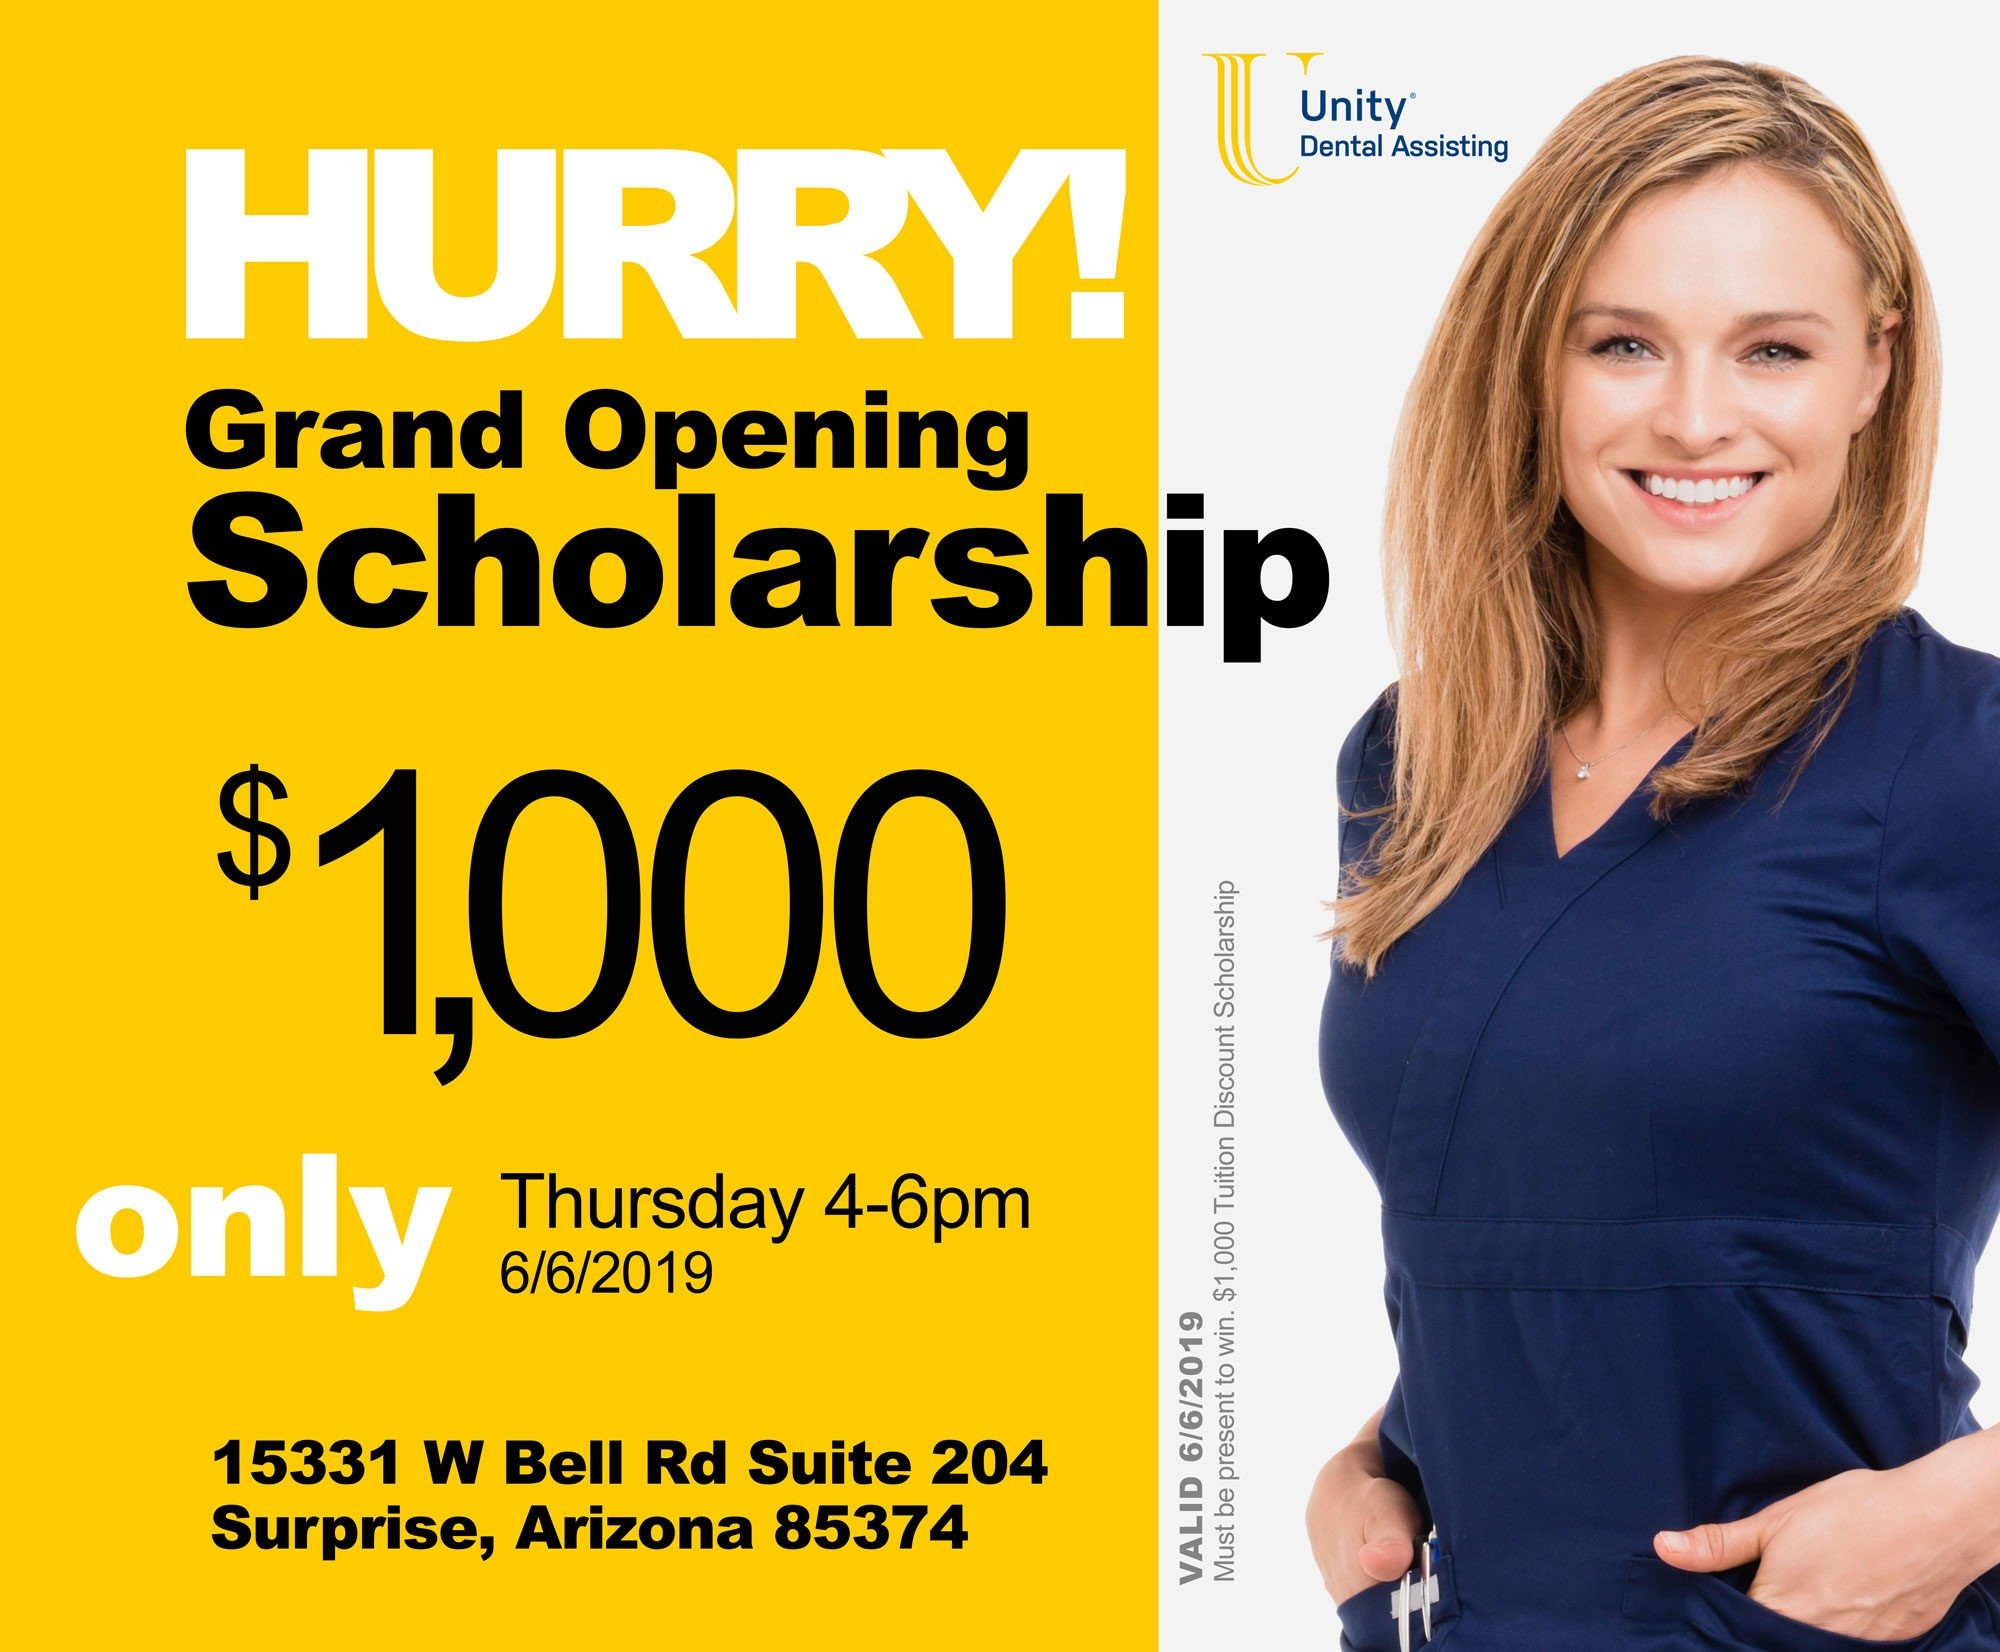 $1,000 Grand Opening Scholarship - HURRY! - One Day Only!